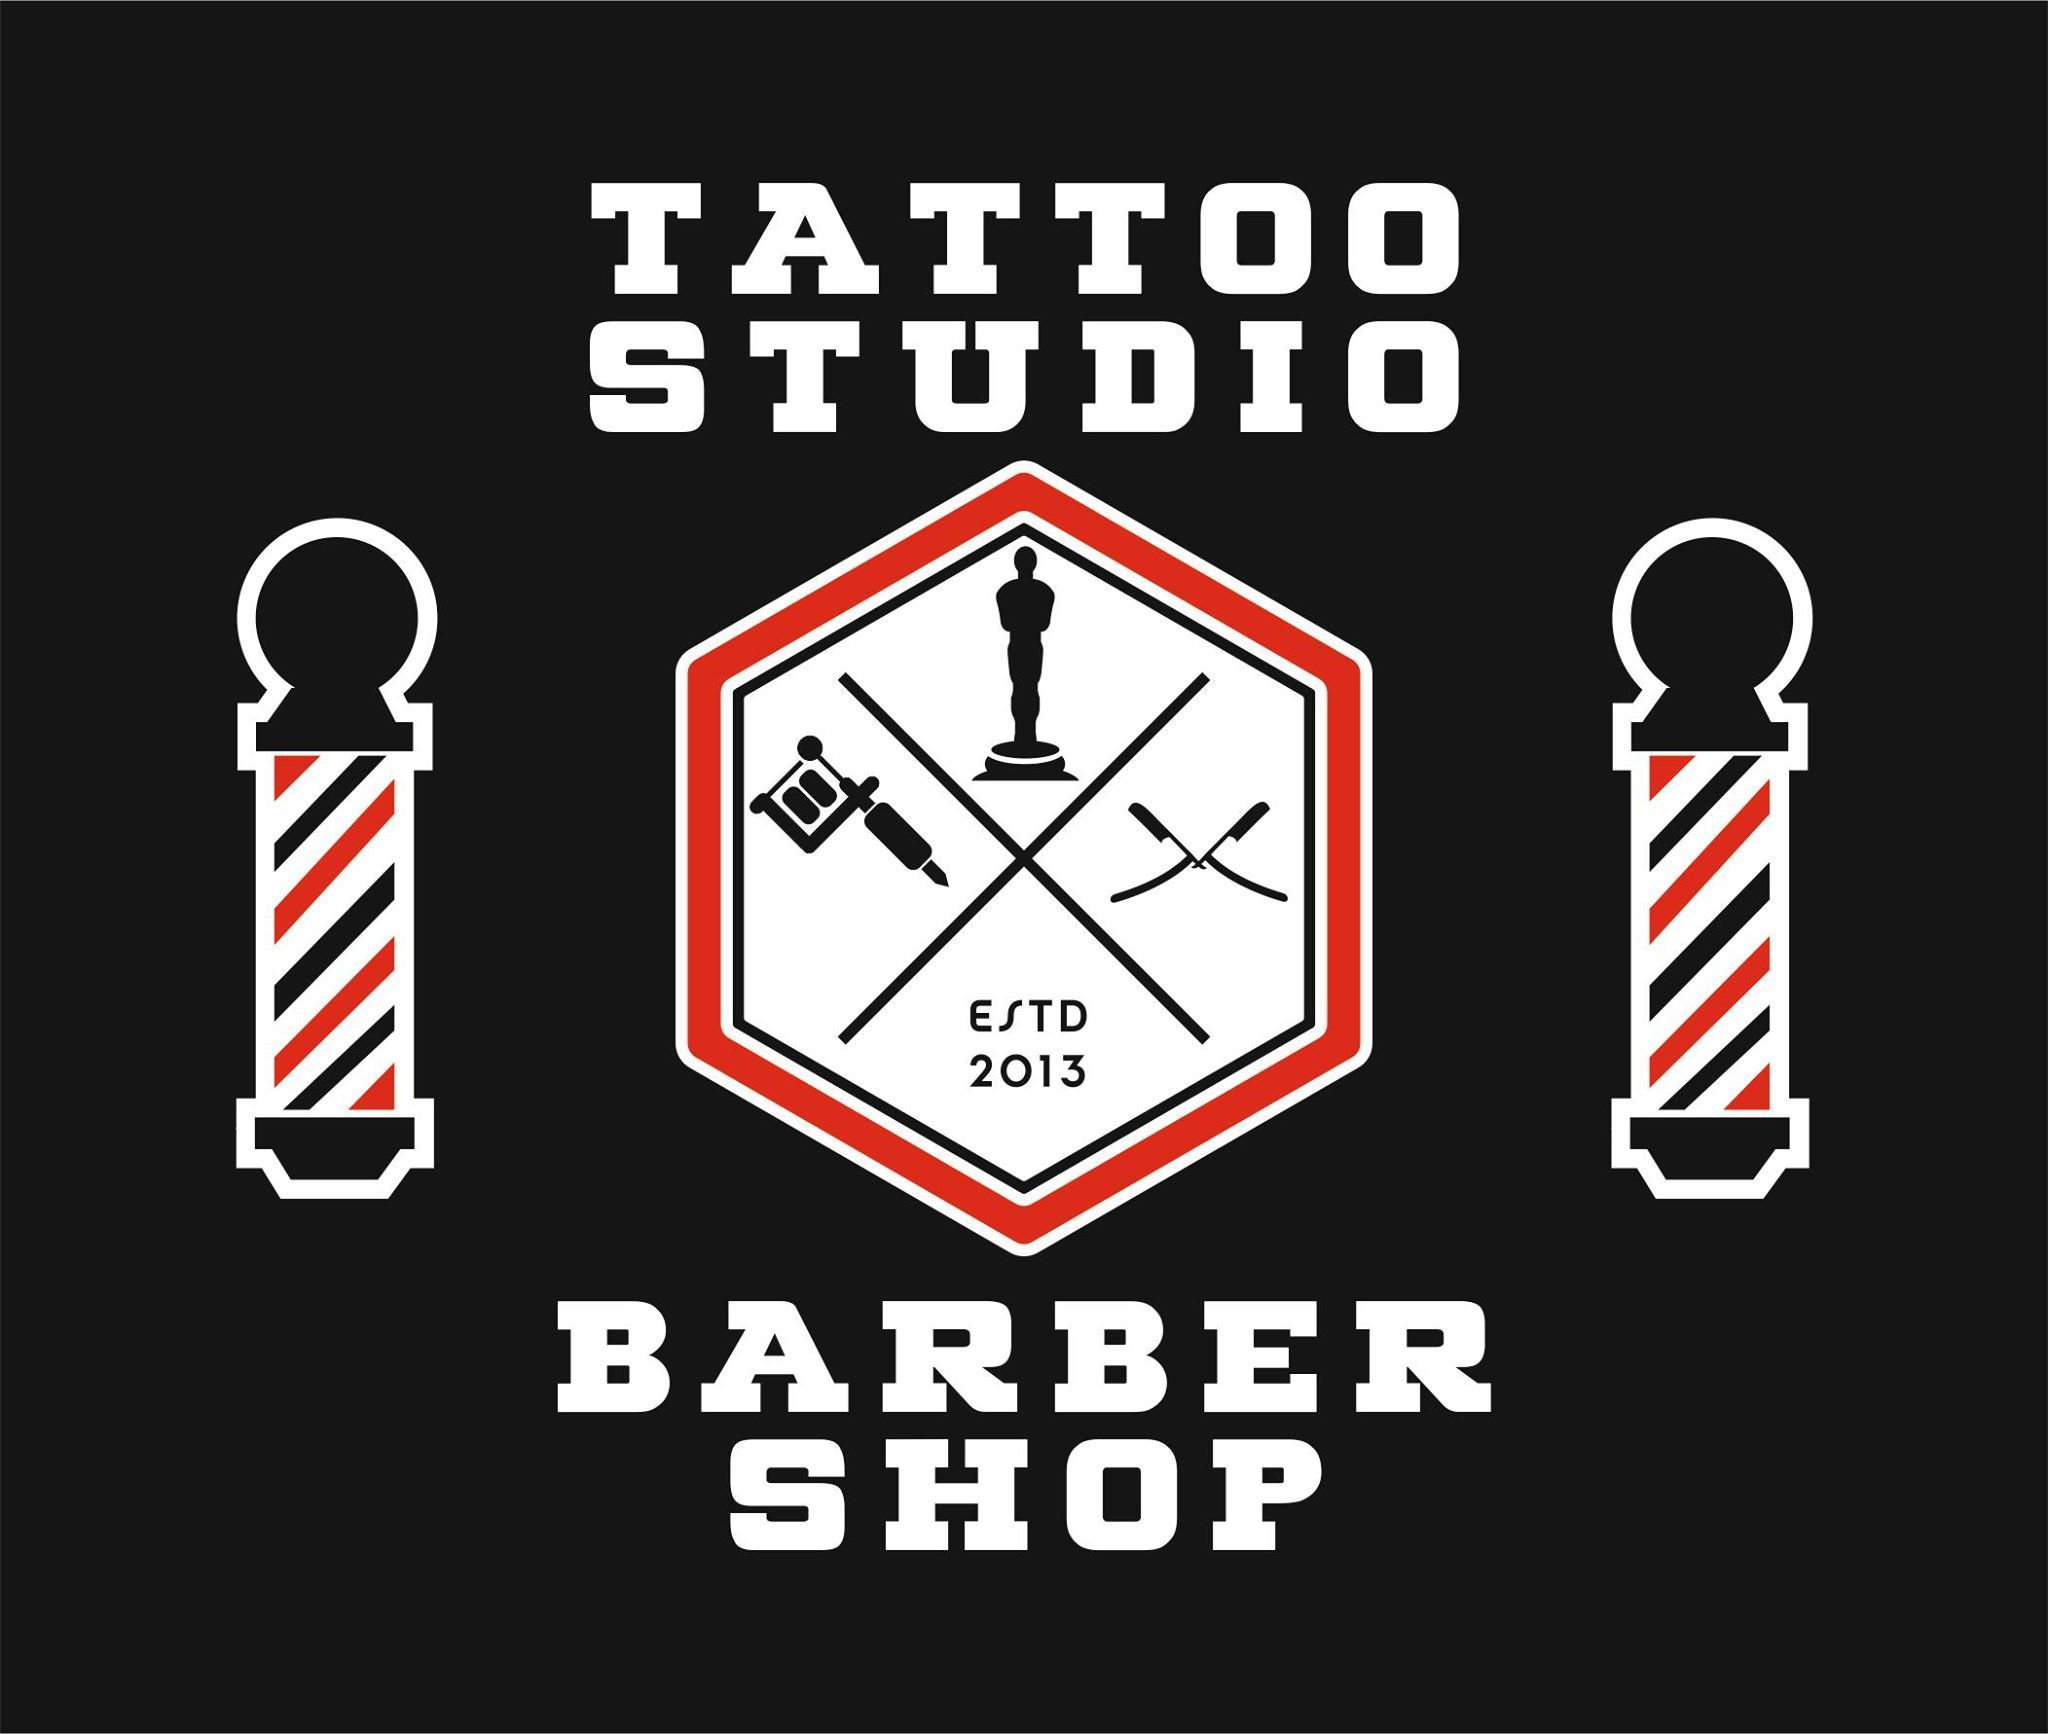 OSCAR TATTOO STUDIO & BARBER SHOP